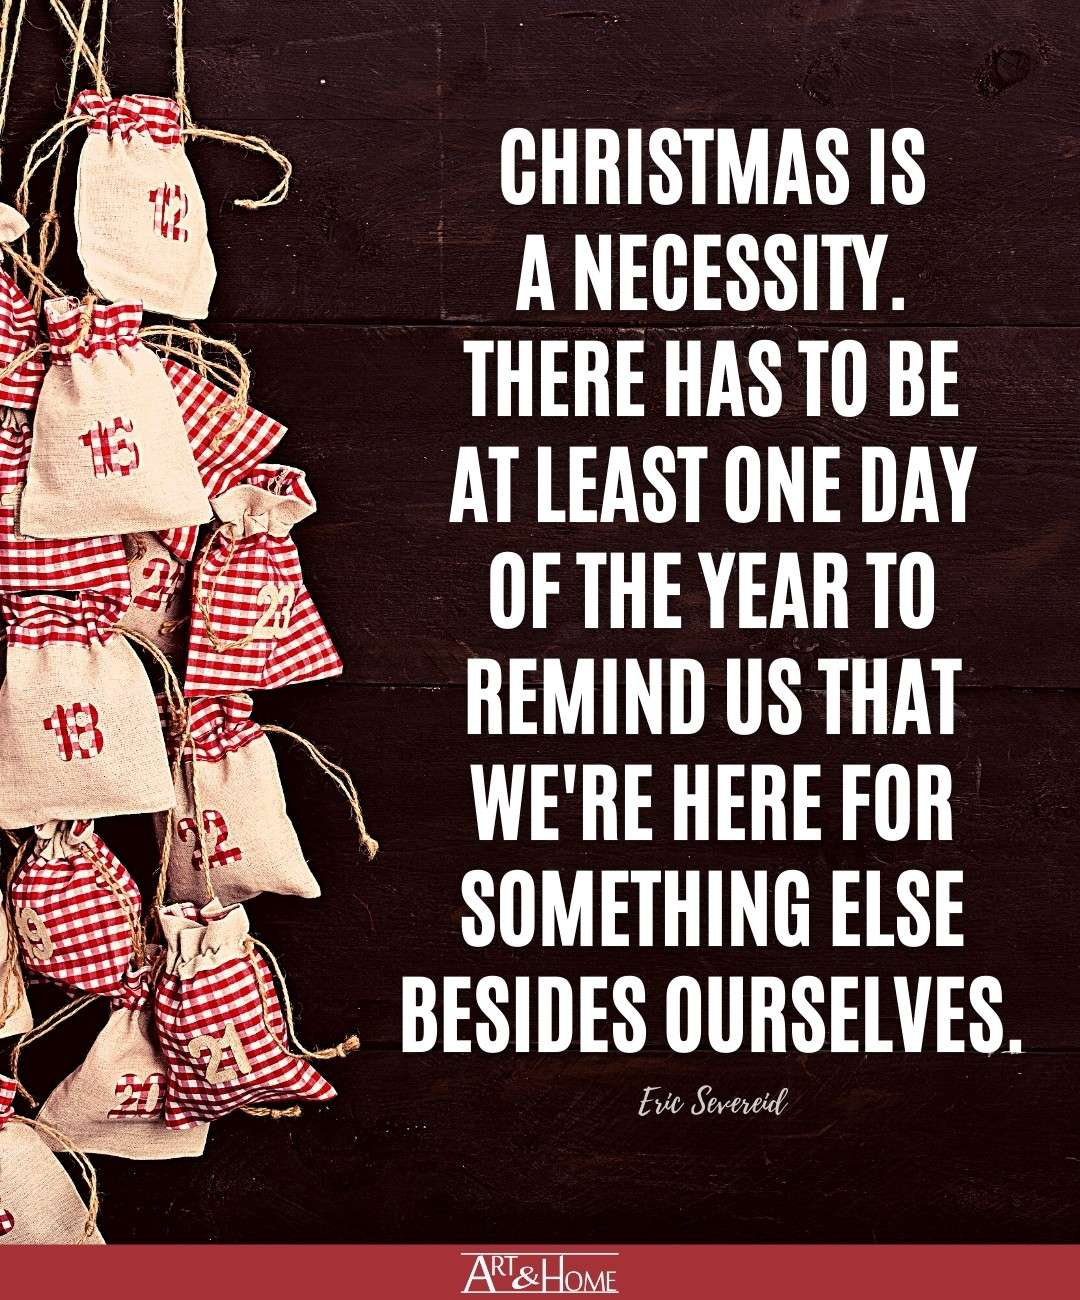 Eric Severeid Quote About Christmas being a necessity.